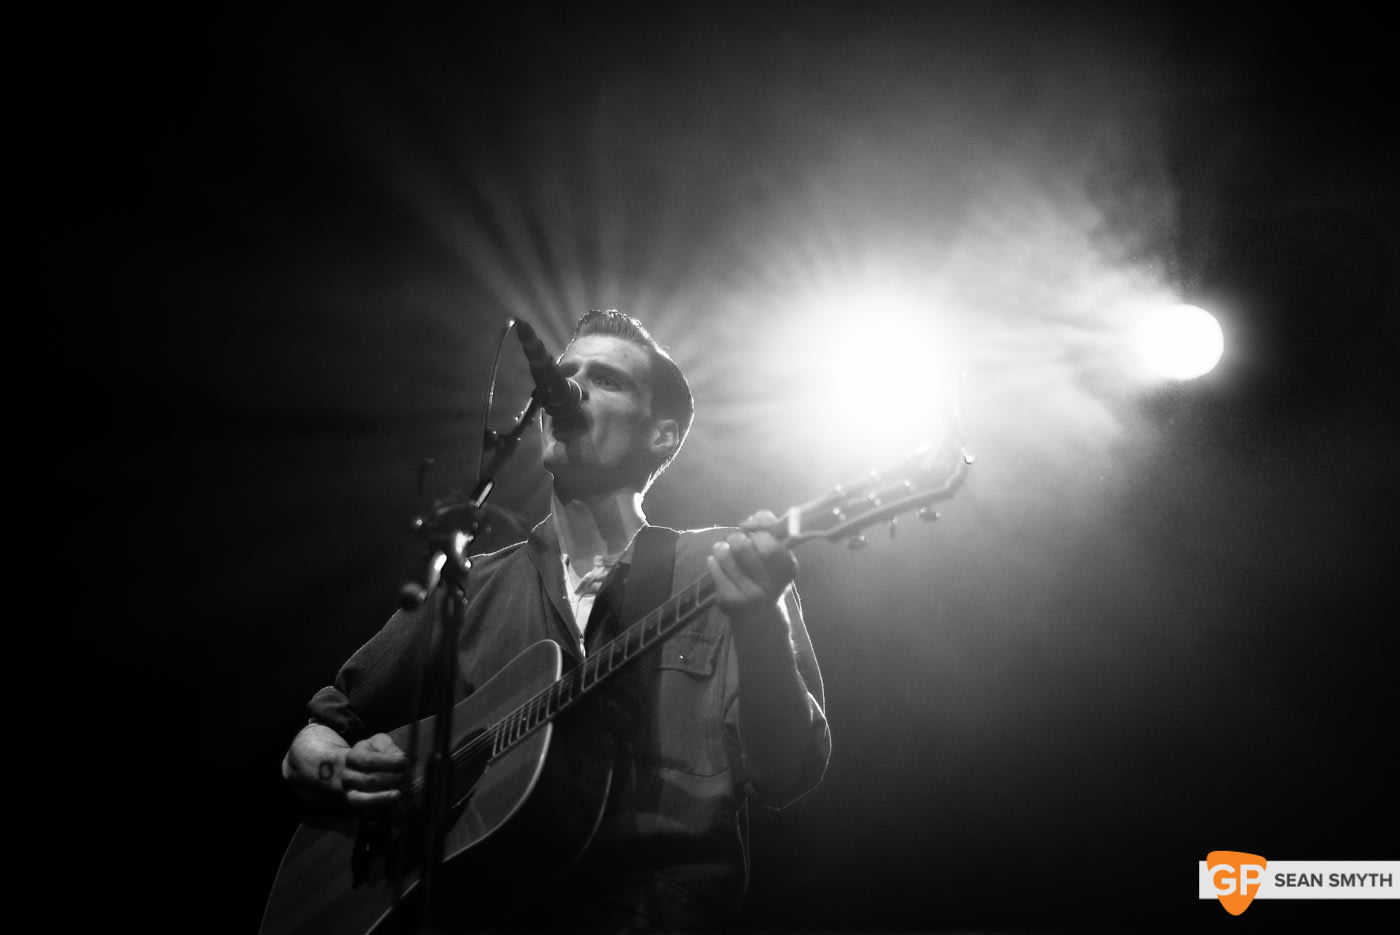 hudson-taylor-at-the-olympia-theatre-26-2-15-by-sean-smyth-9-of-26_16134453394_o